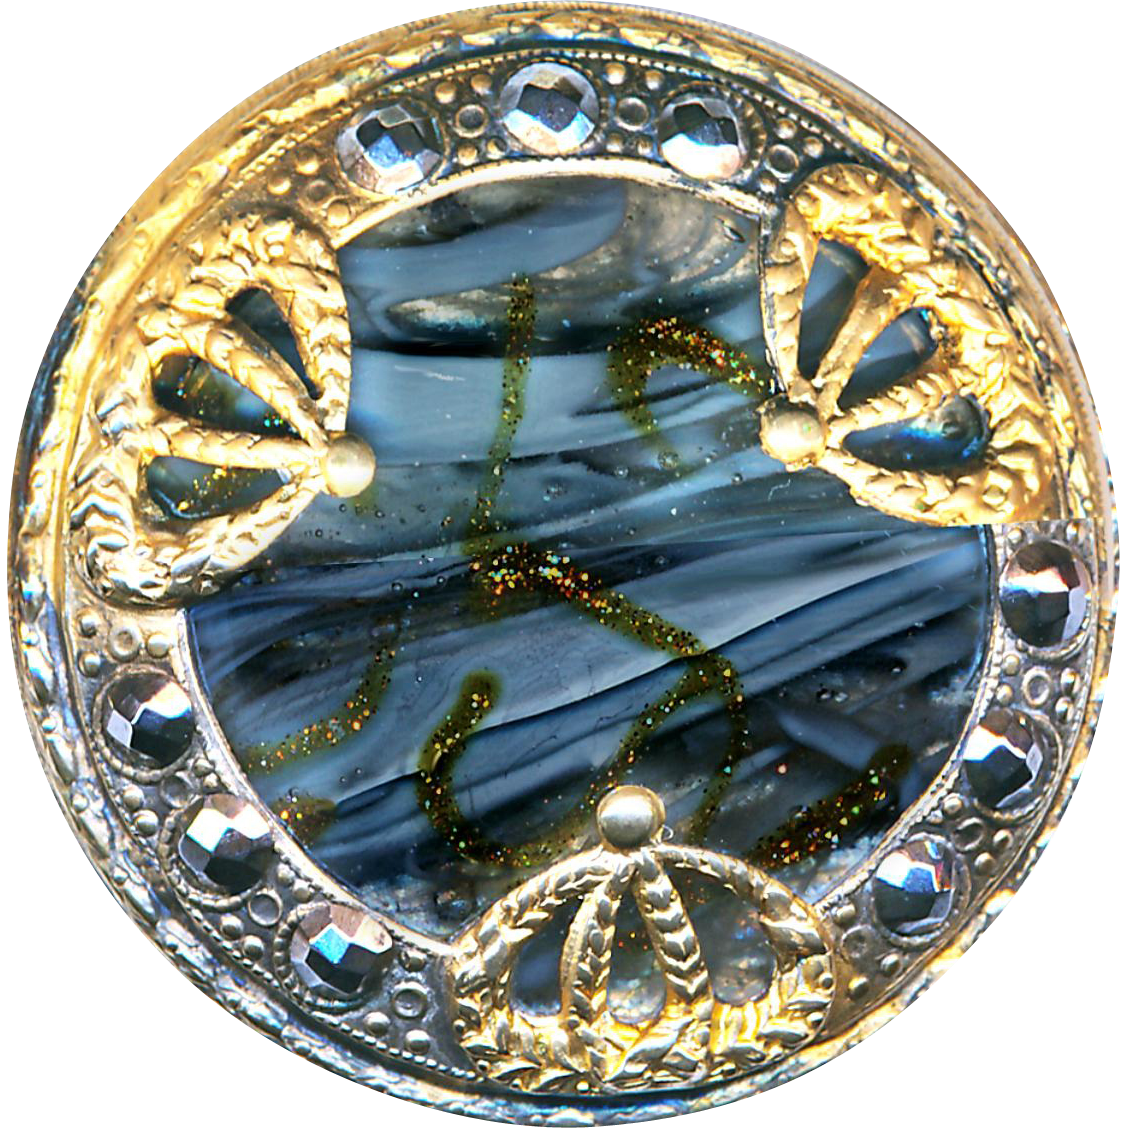 Button--Large Late 19th C. Art Glass Jewel with Aventurine Trailings in 2-tone Metal & Cut Steels